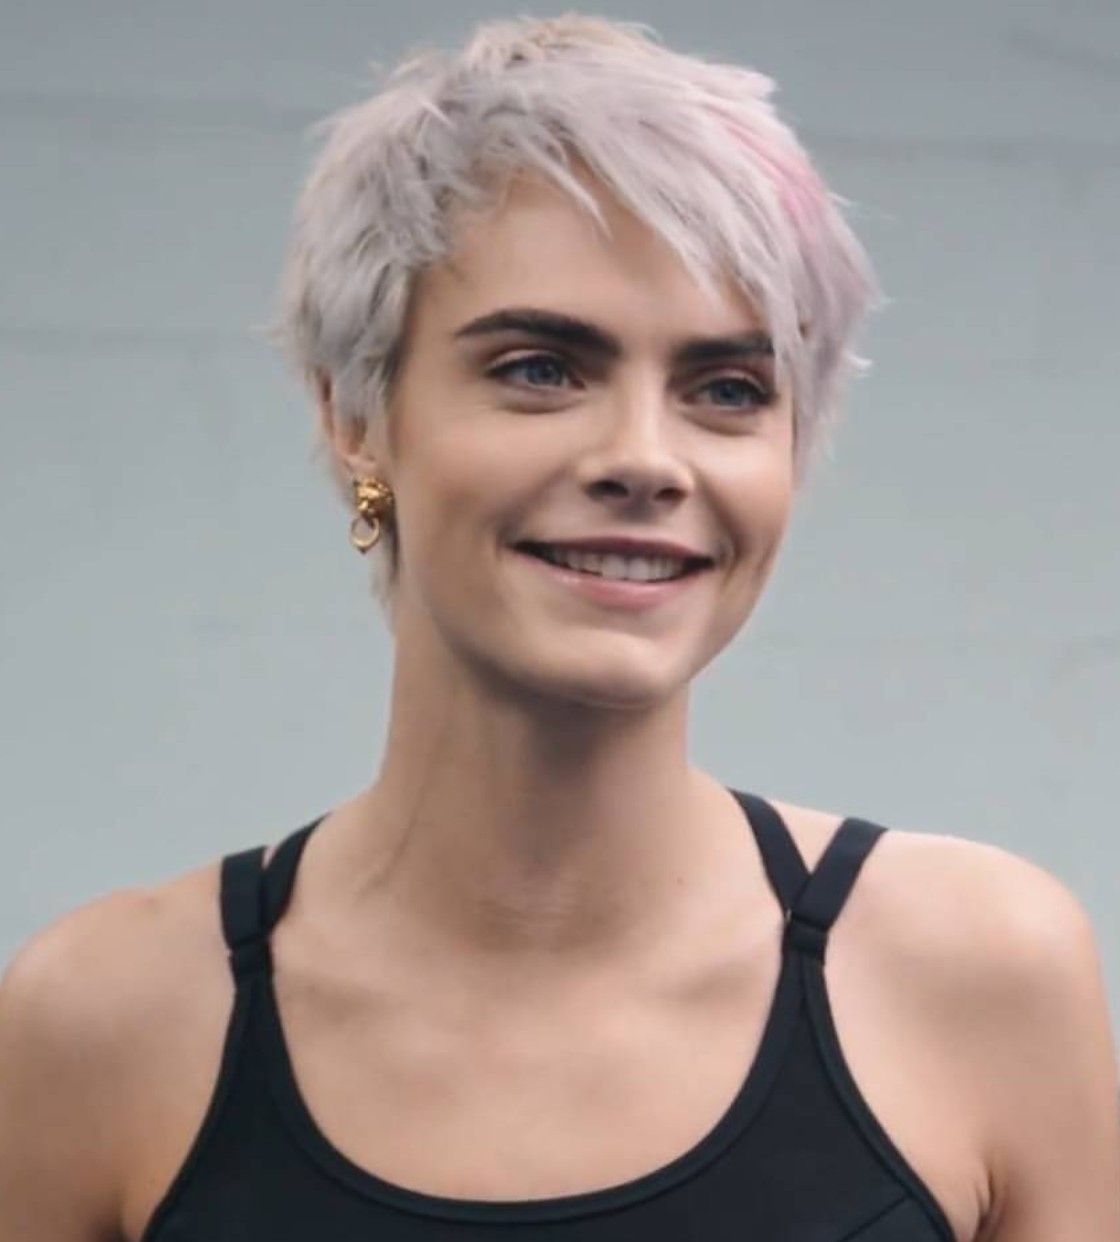 Pin By Hala Mh On Jessie Cara Delevingne Hair Cara Delvingne Cara Delevigne